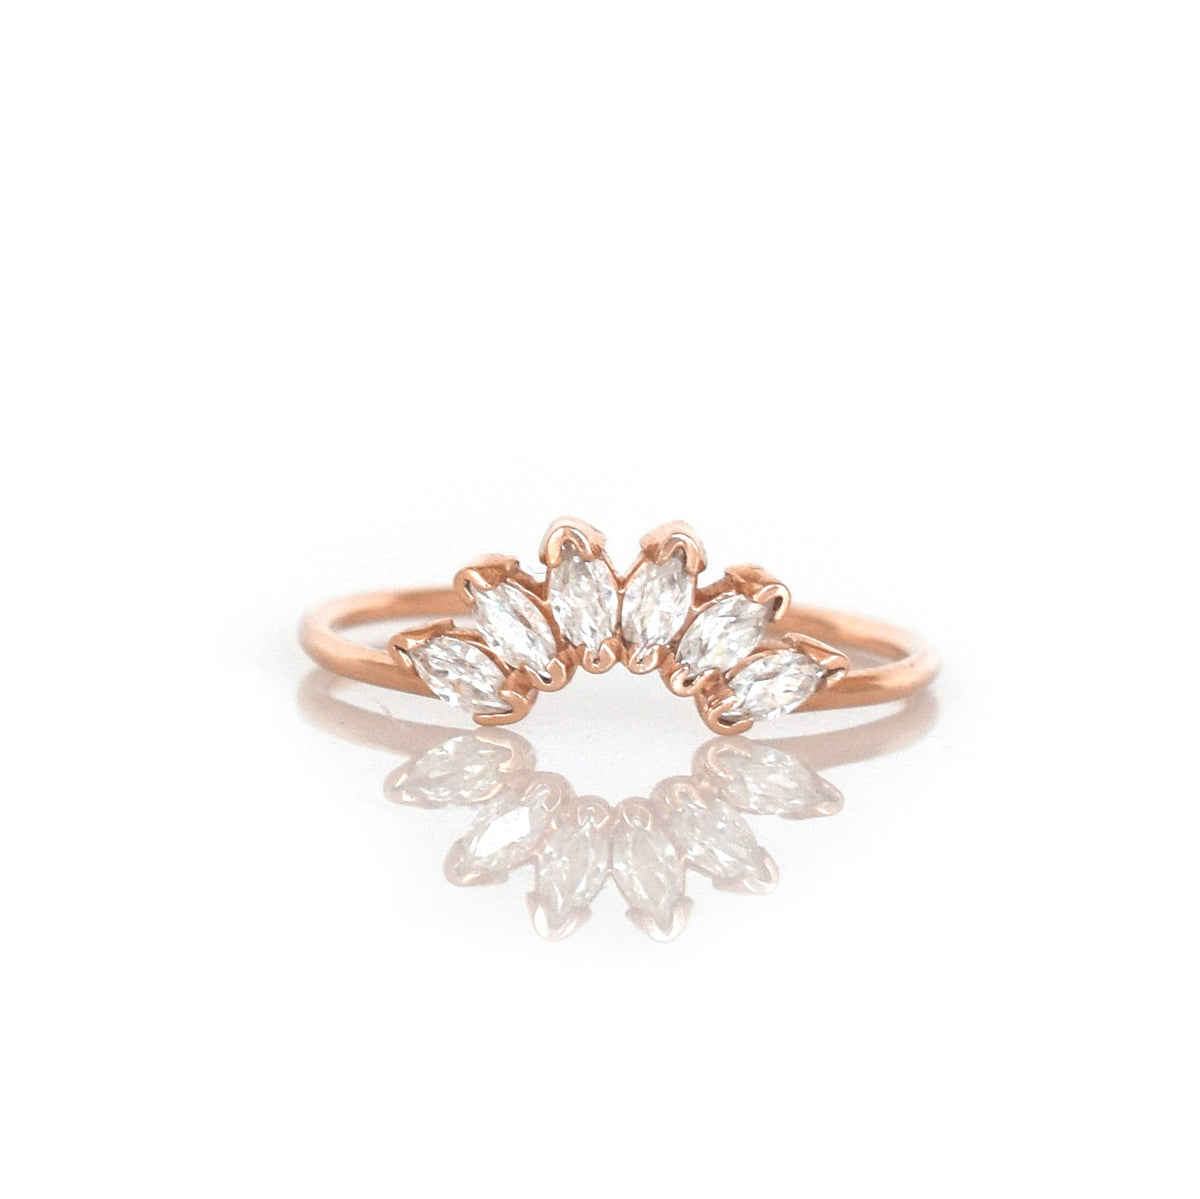 14kt Gold Diamond Caribbean Sunrise Ring